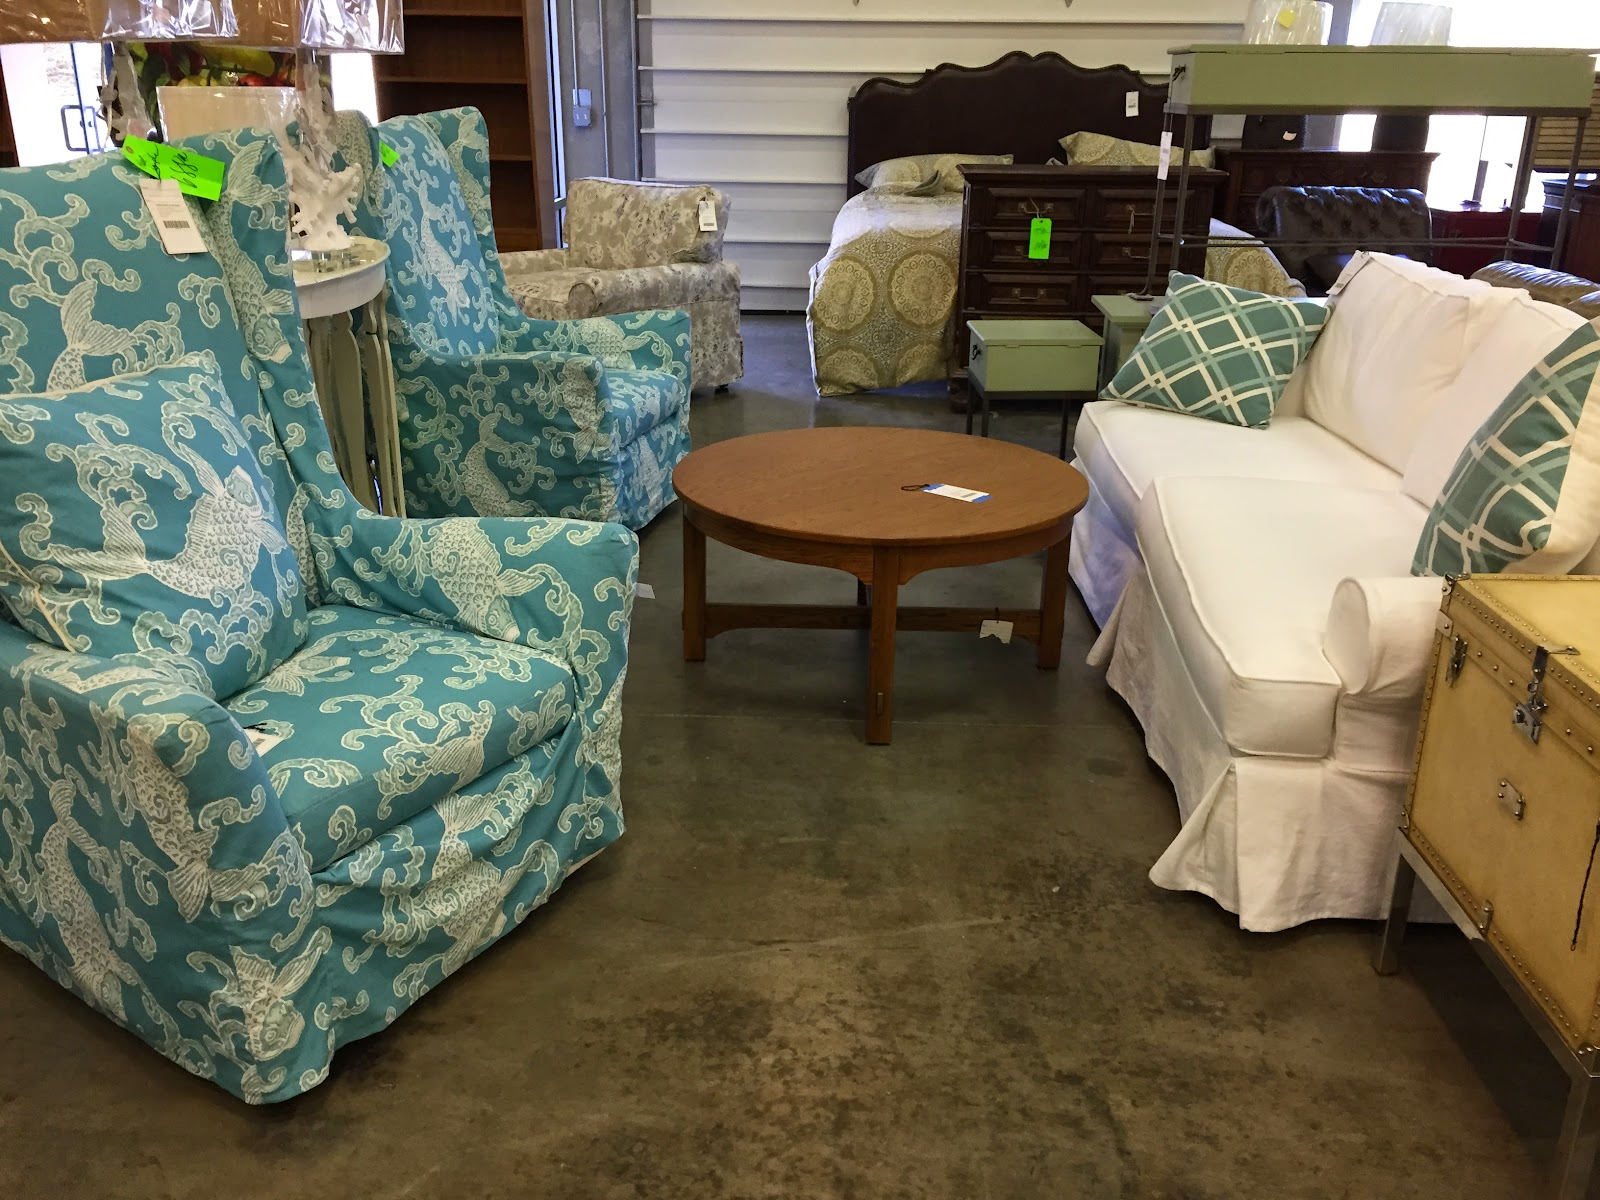 Shop Tour Green Front Furniture in Manassas